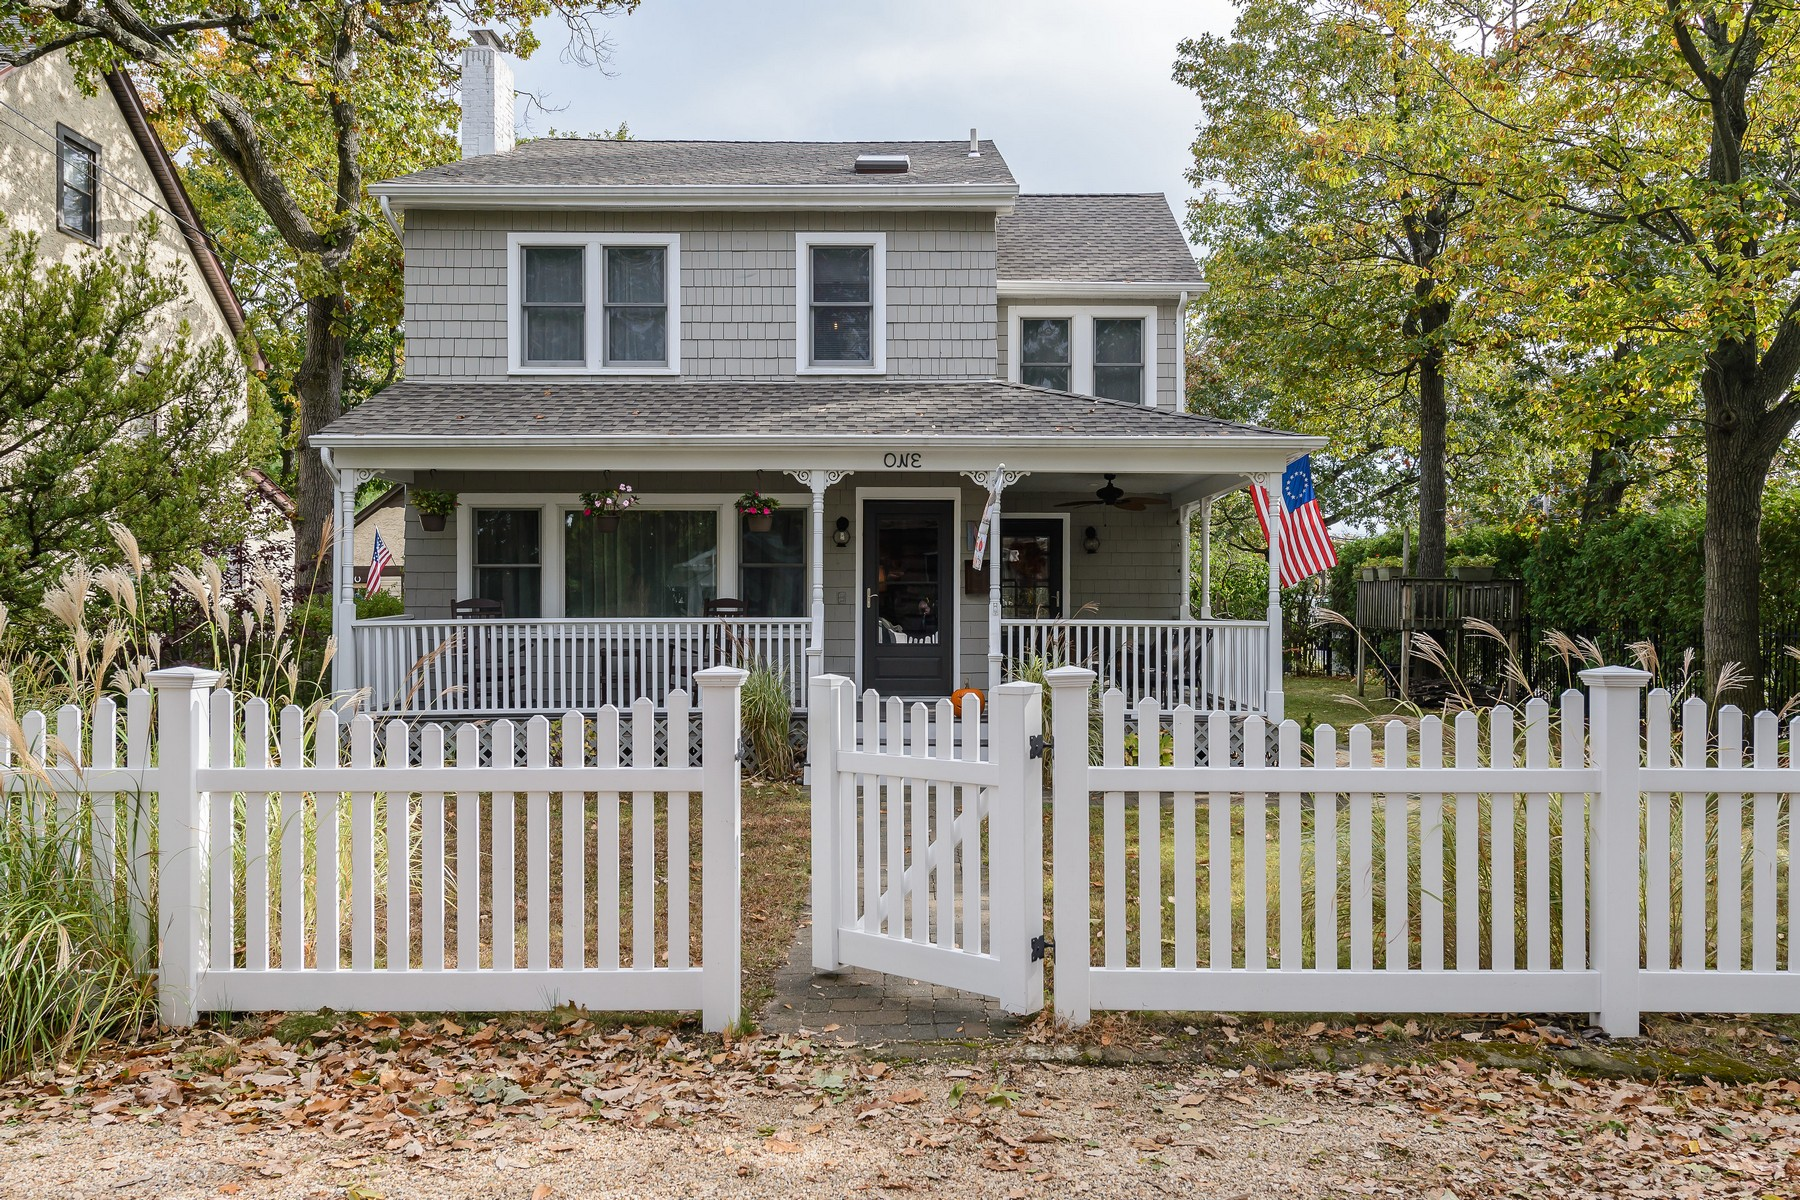 Single Family Home for Sale at 1 Revillo Rd , Bayville, NY 11709 1 Revillo Rd, Bayville, New York, 11709 United States